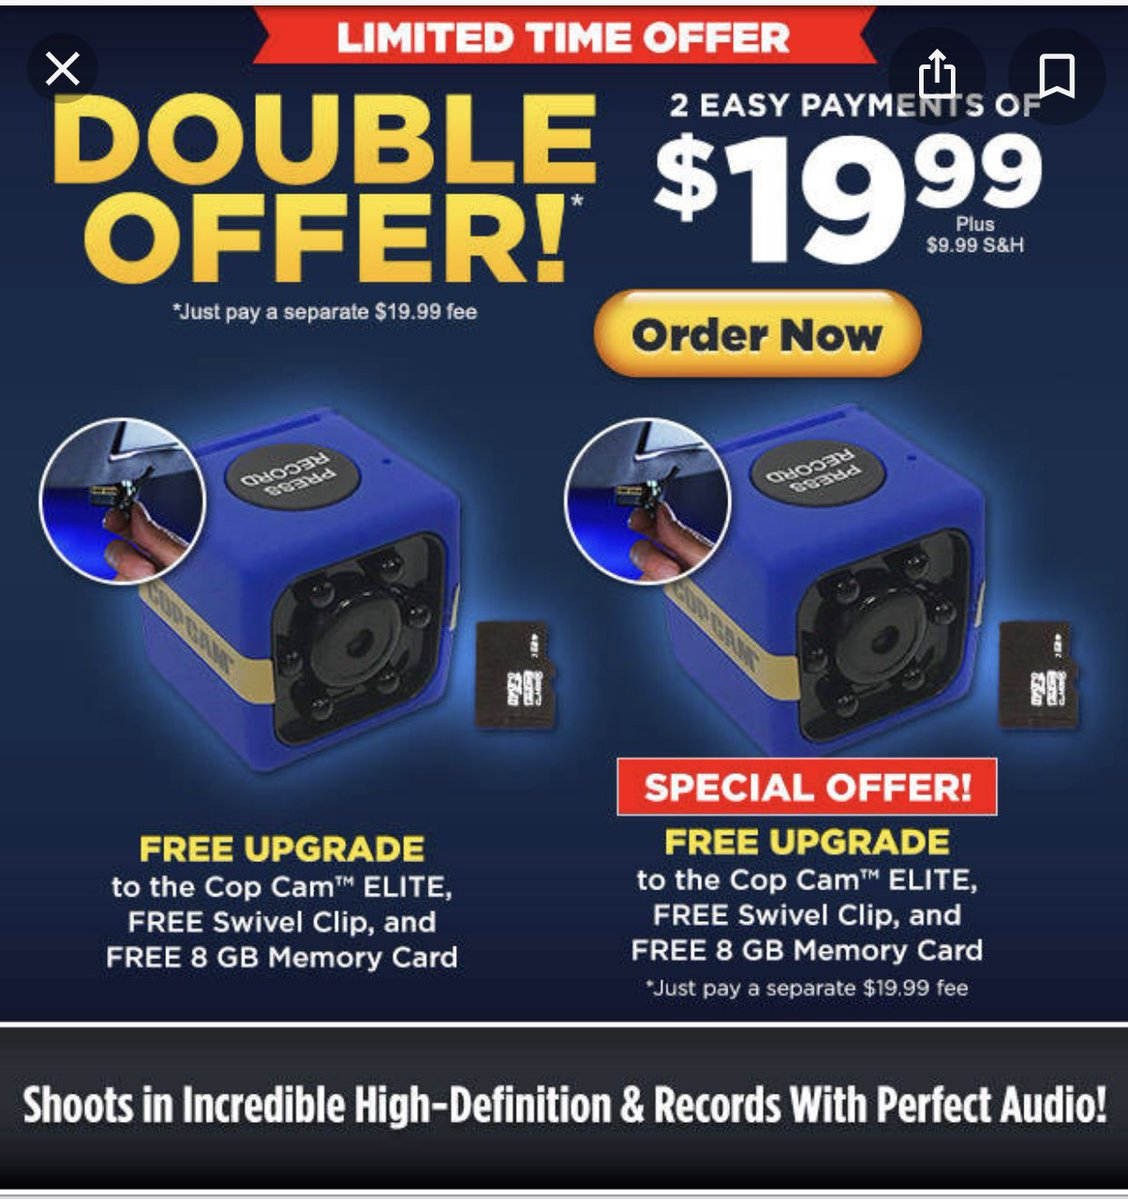 @BulbHeadIdeas when someone orders a product. Why aren't you able to ship it correctly? This is #DOUBLE OFFER! #scam #CustomerService